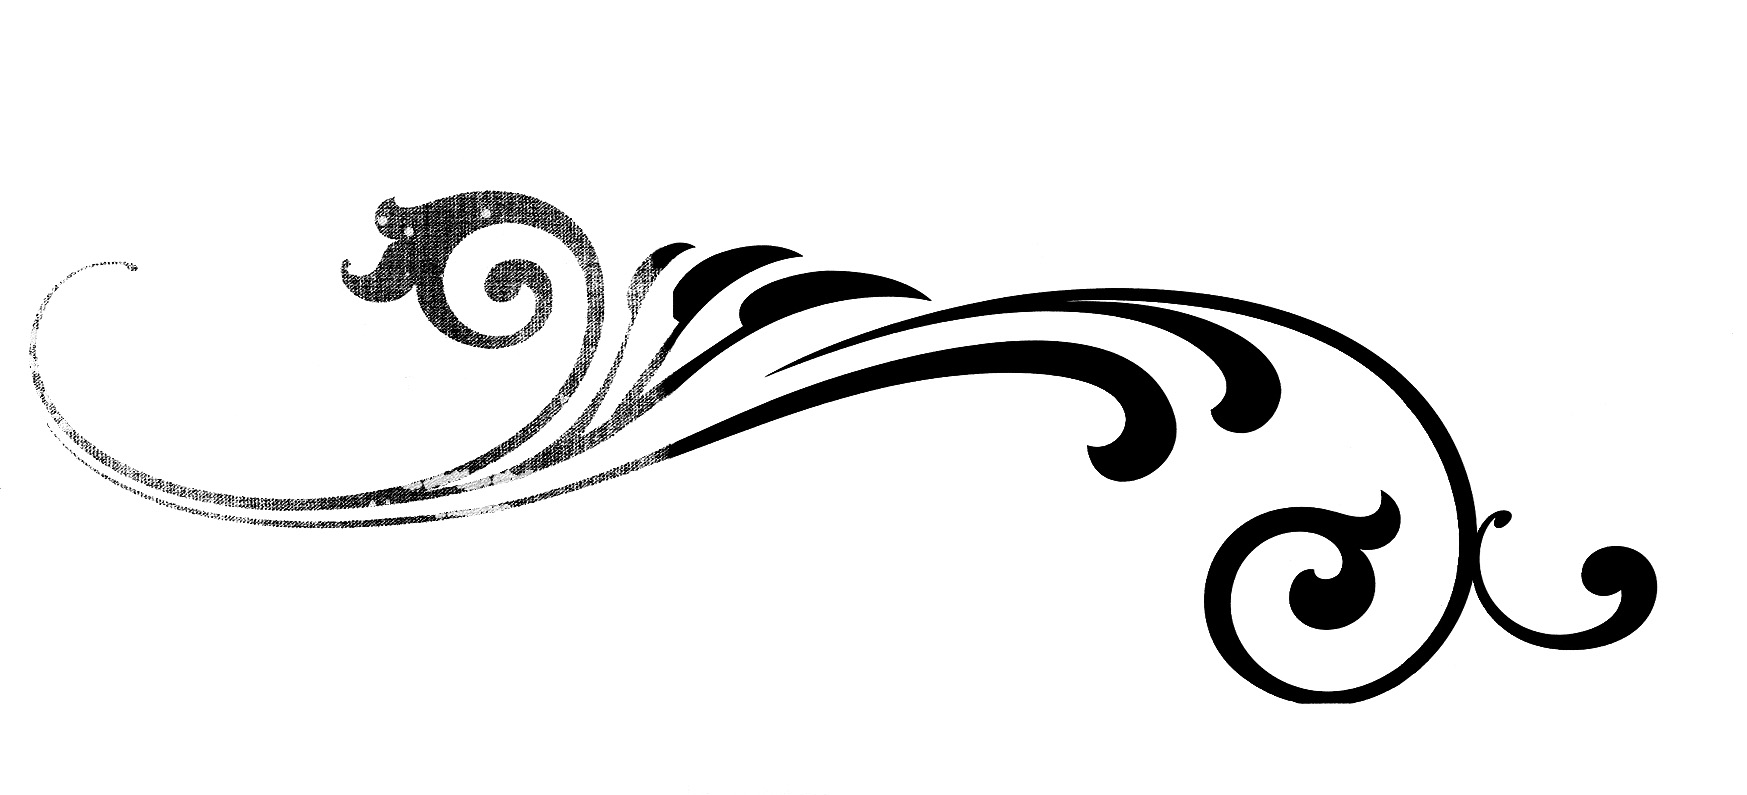 Calligraphy flourish vector clipart best